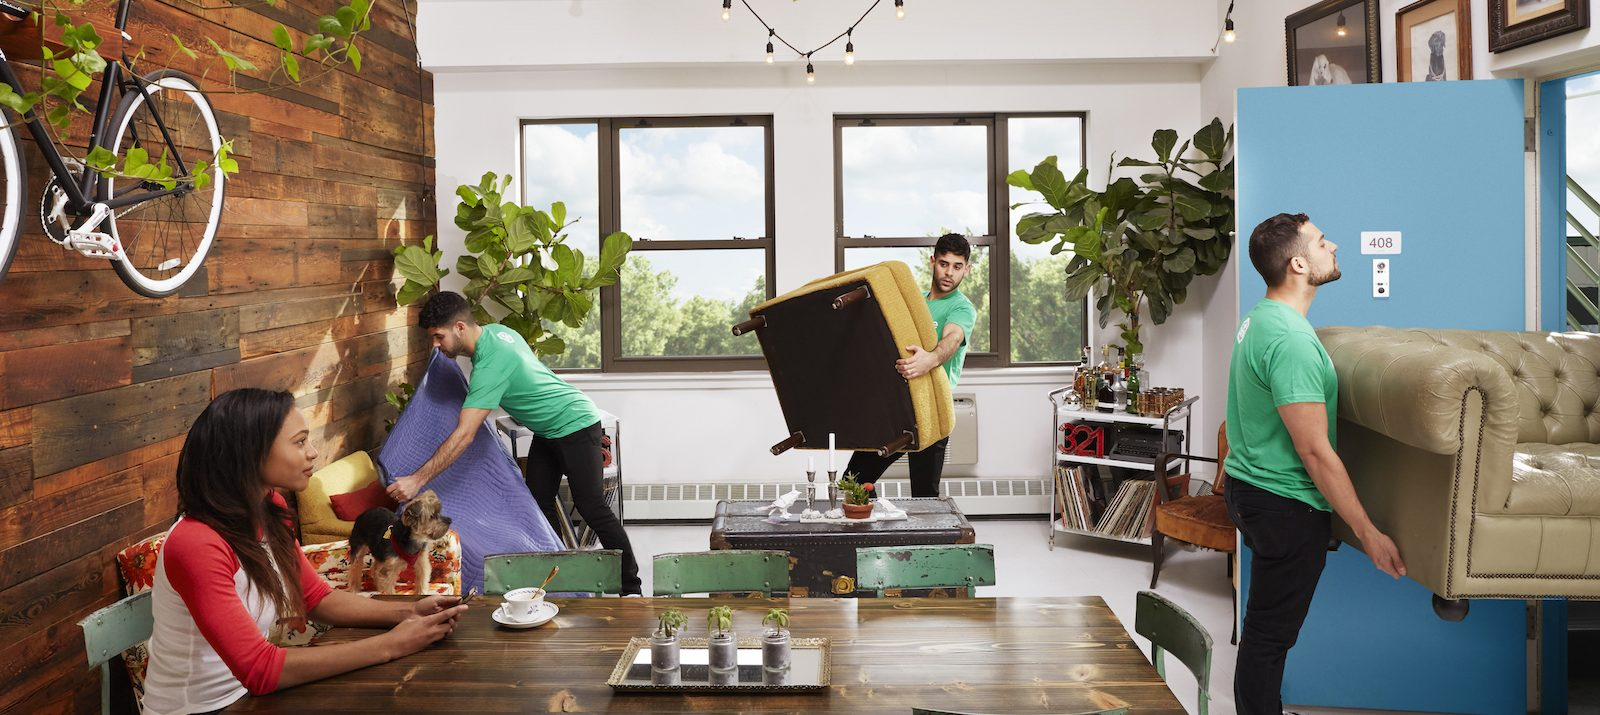 Tips to Deep Clean Your New Home Before Shifting